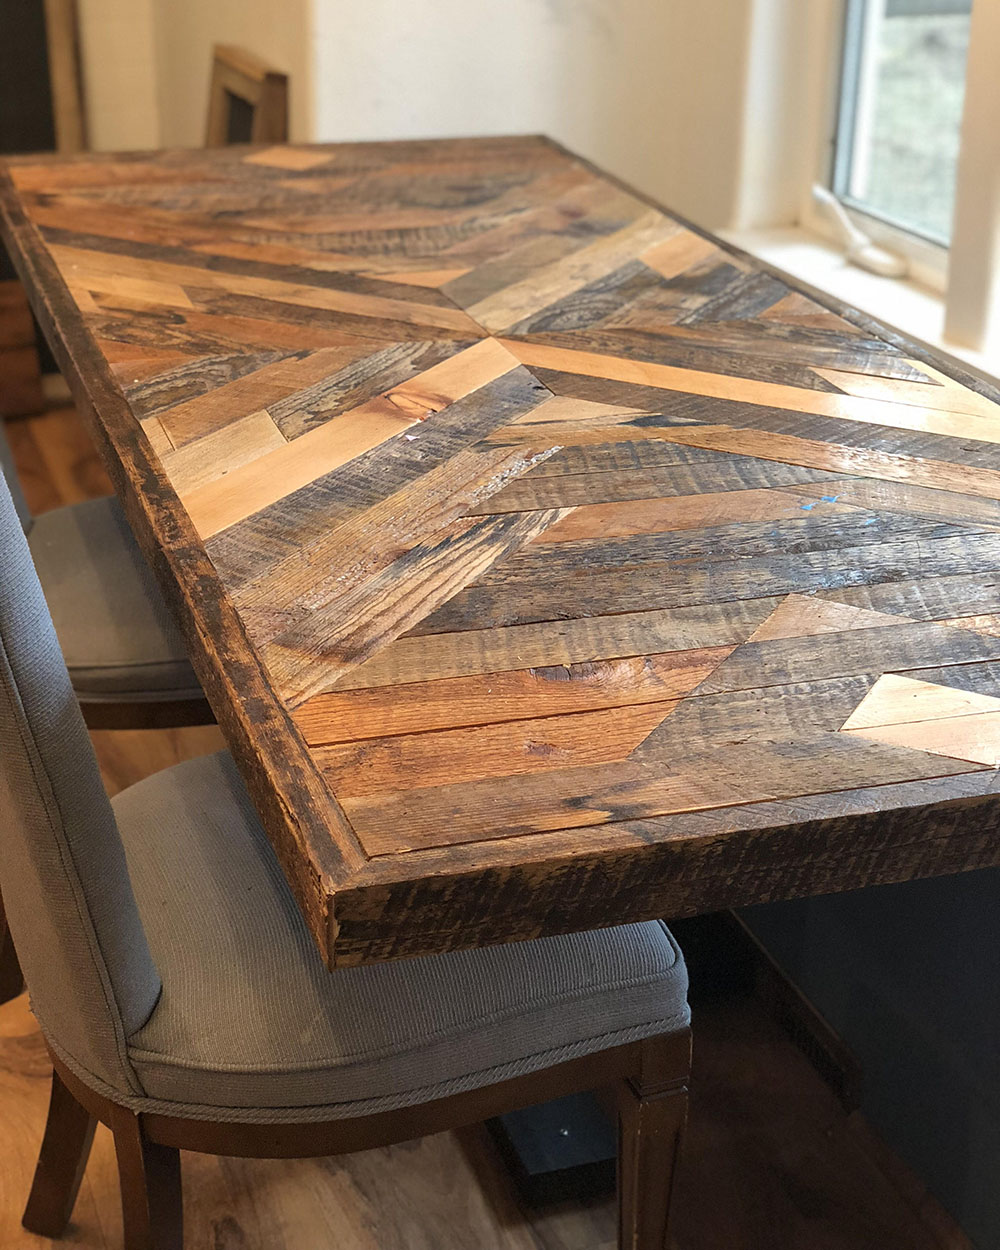 Inlaid Table top made from reclaimed wood